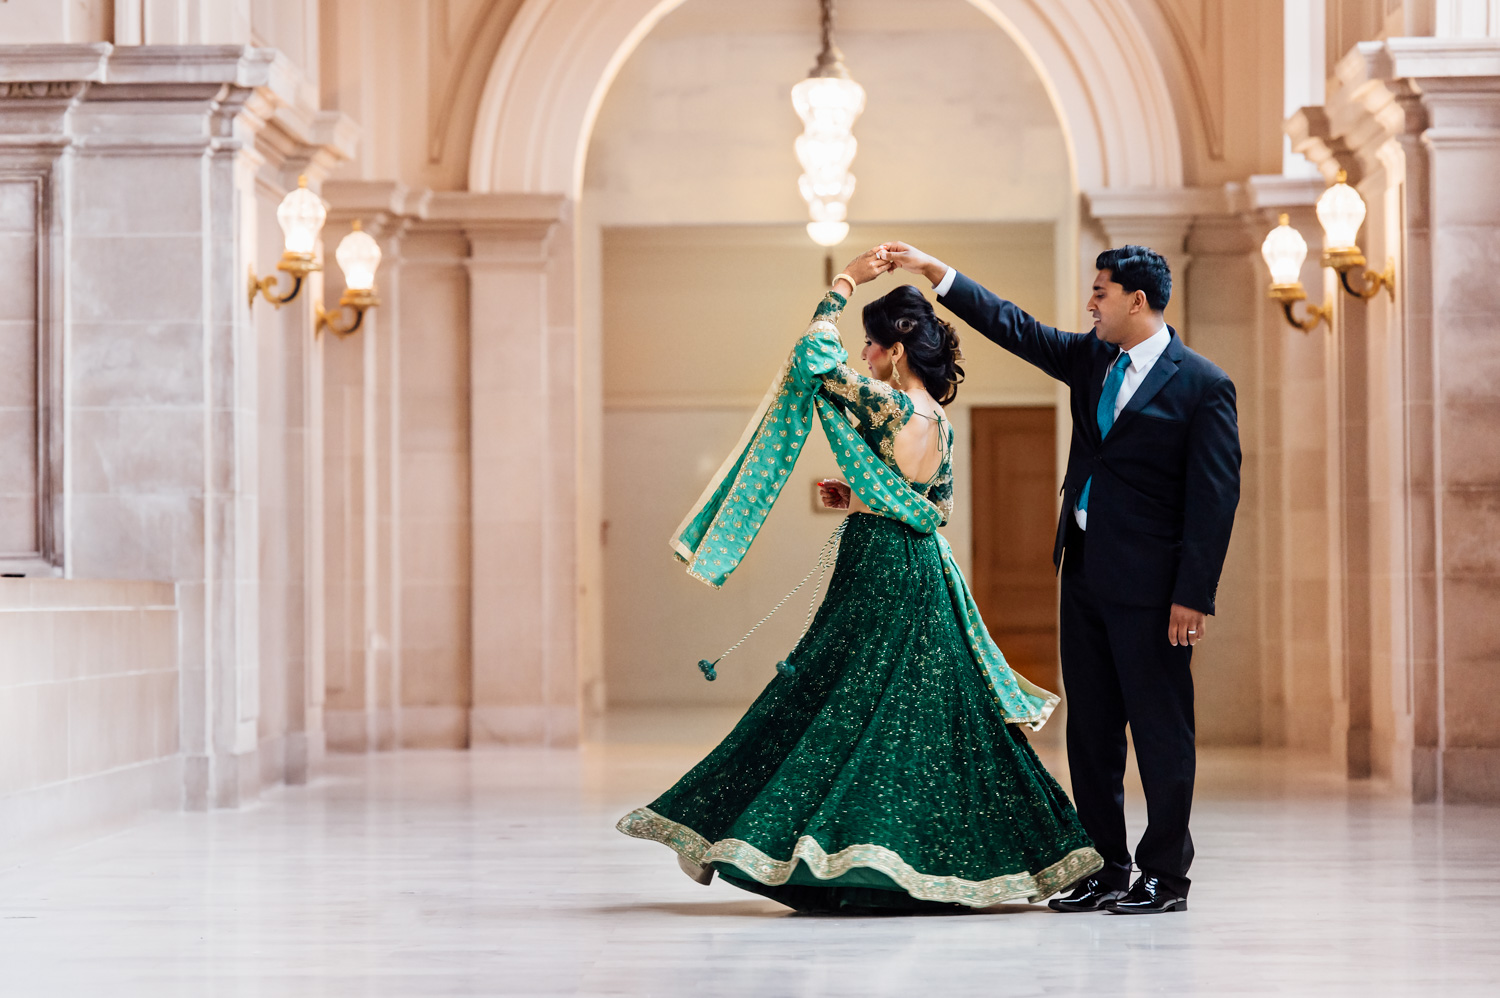 San Francisco Indian wedding photographer